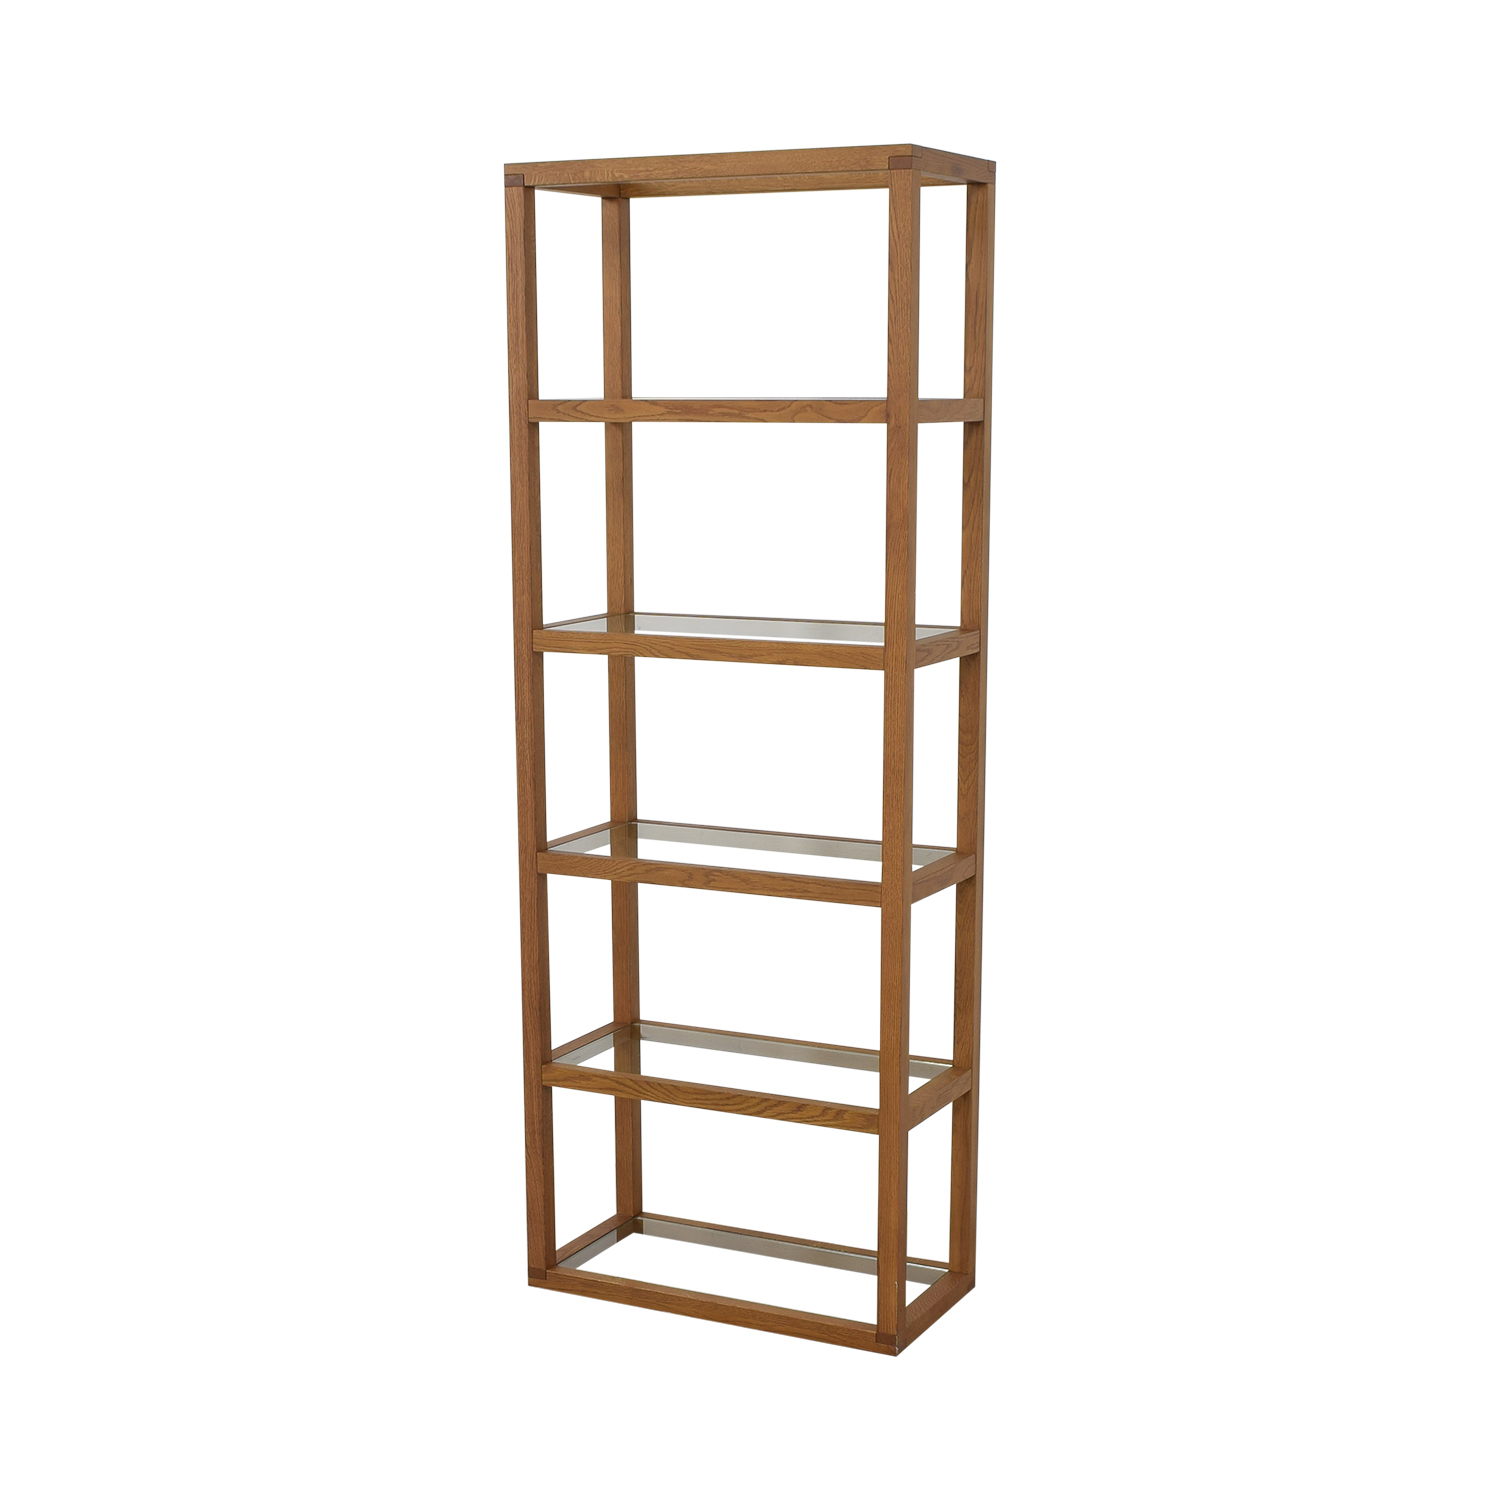 Crate & Barrel Crate & Barrel Five Story Bookcase